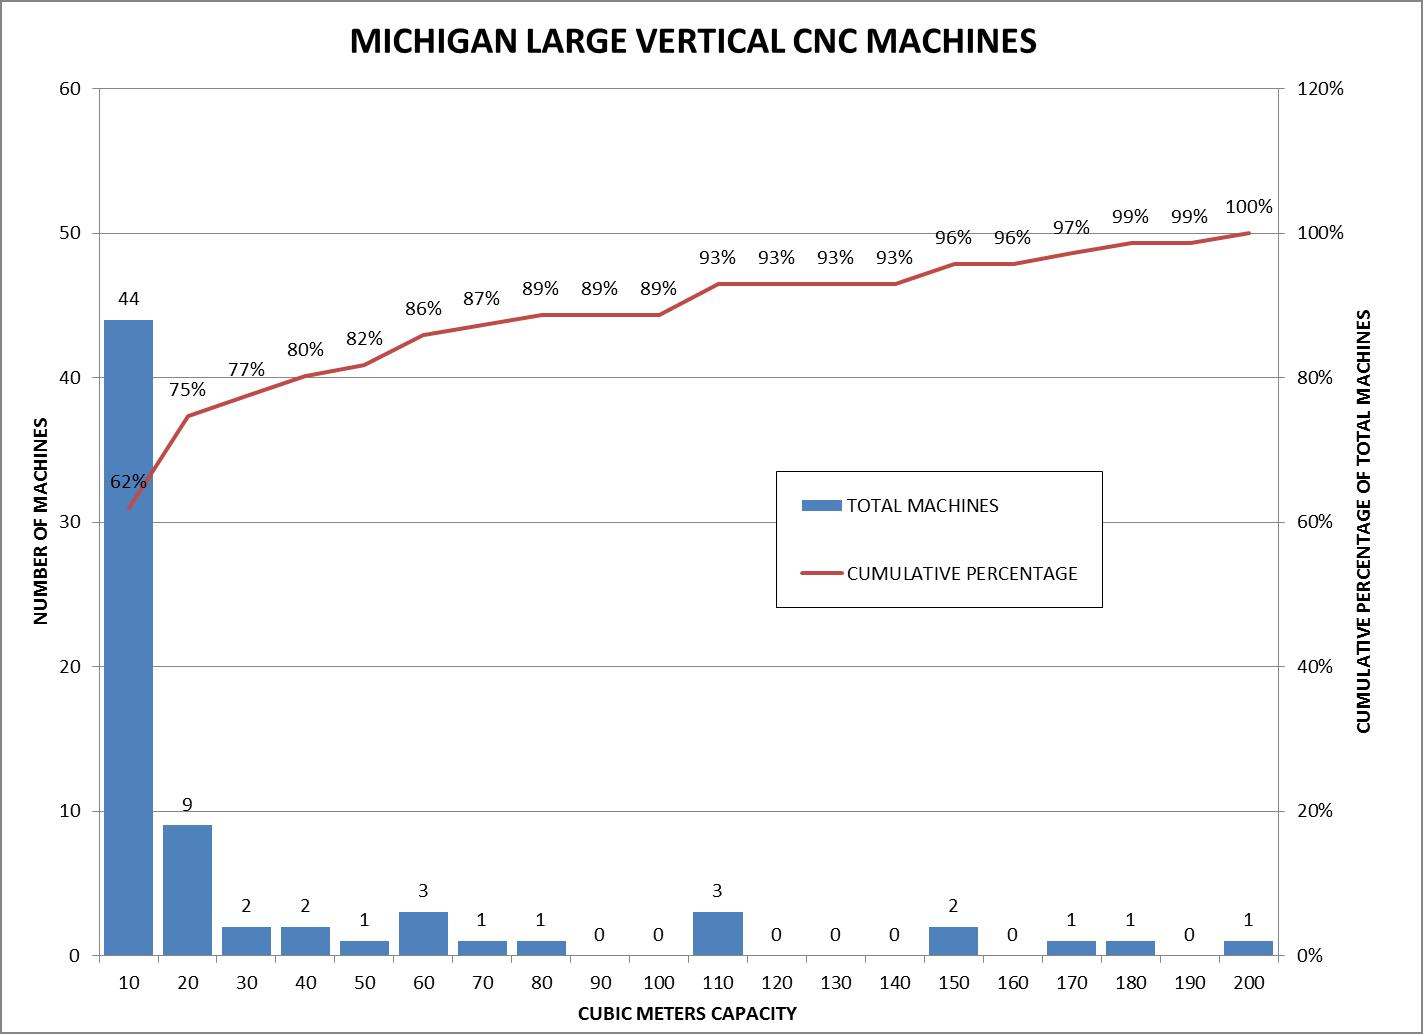 Michigan Large Vertical CNC Machines Histogram